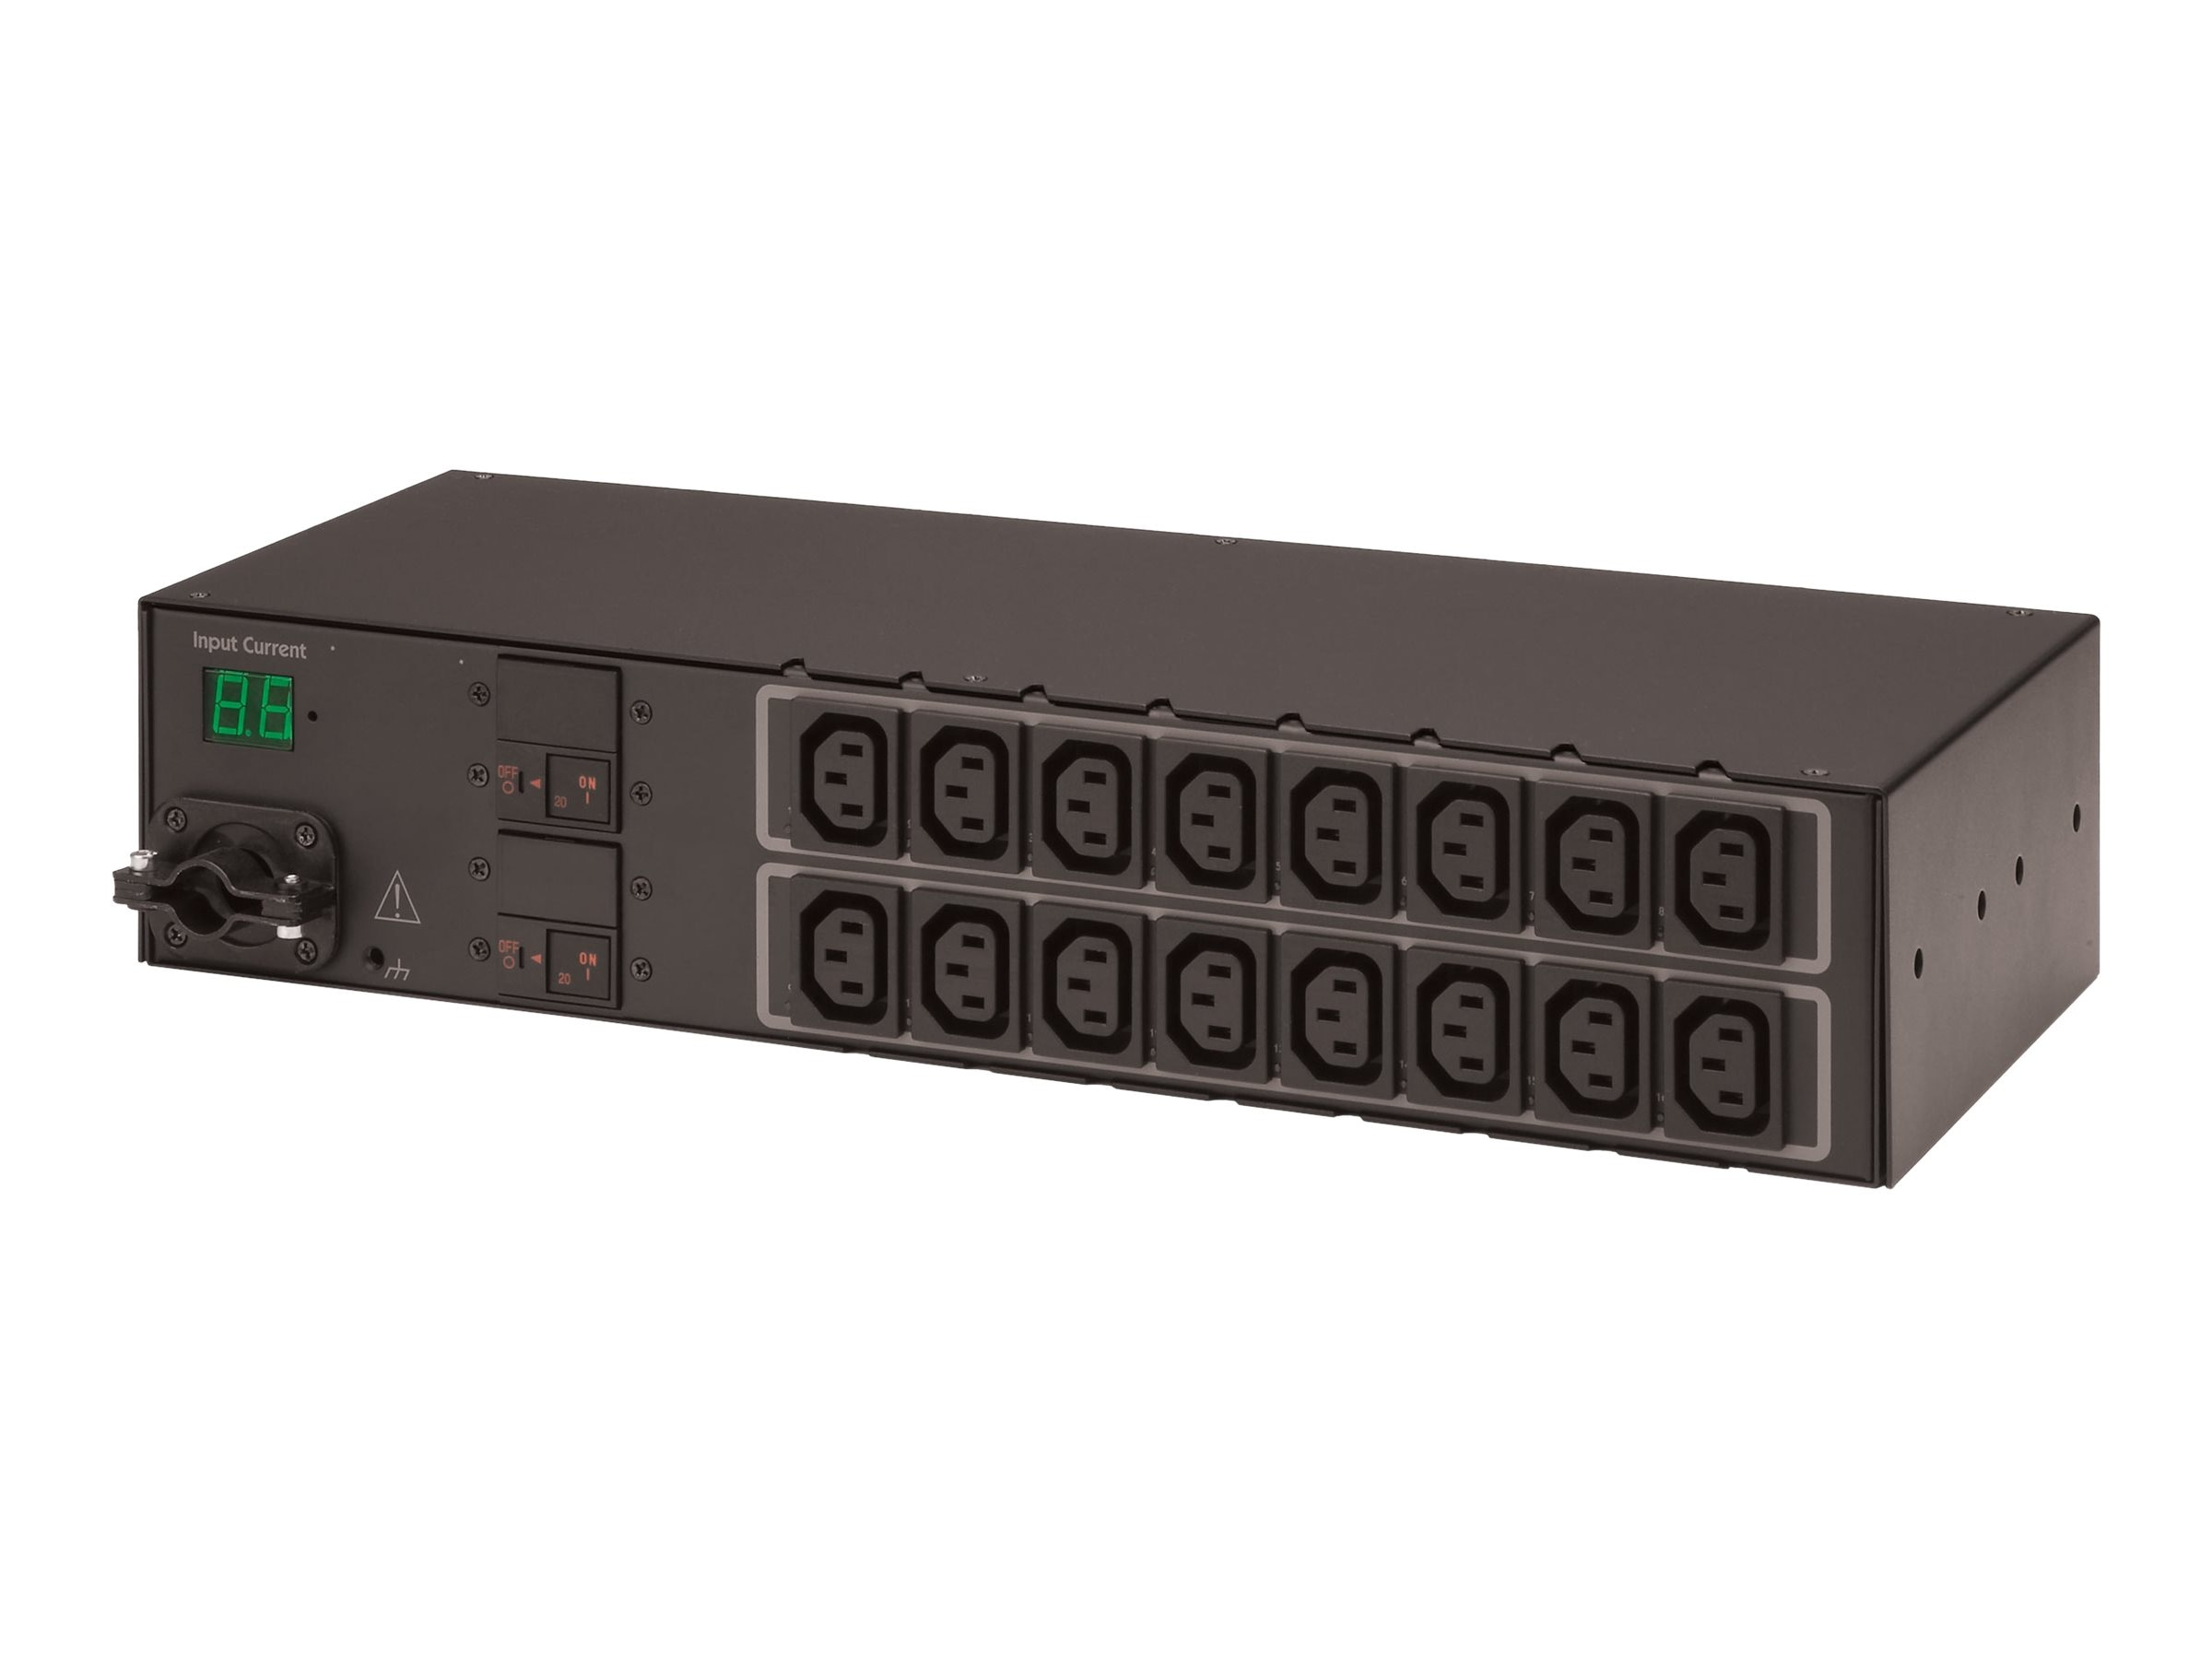 Server Technology Switched CDU, PIPS, 2U, (16) IEC C13 Outlets, CW-16HEK454